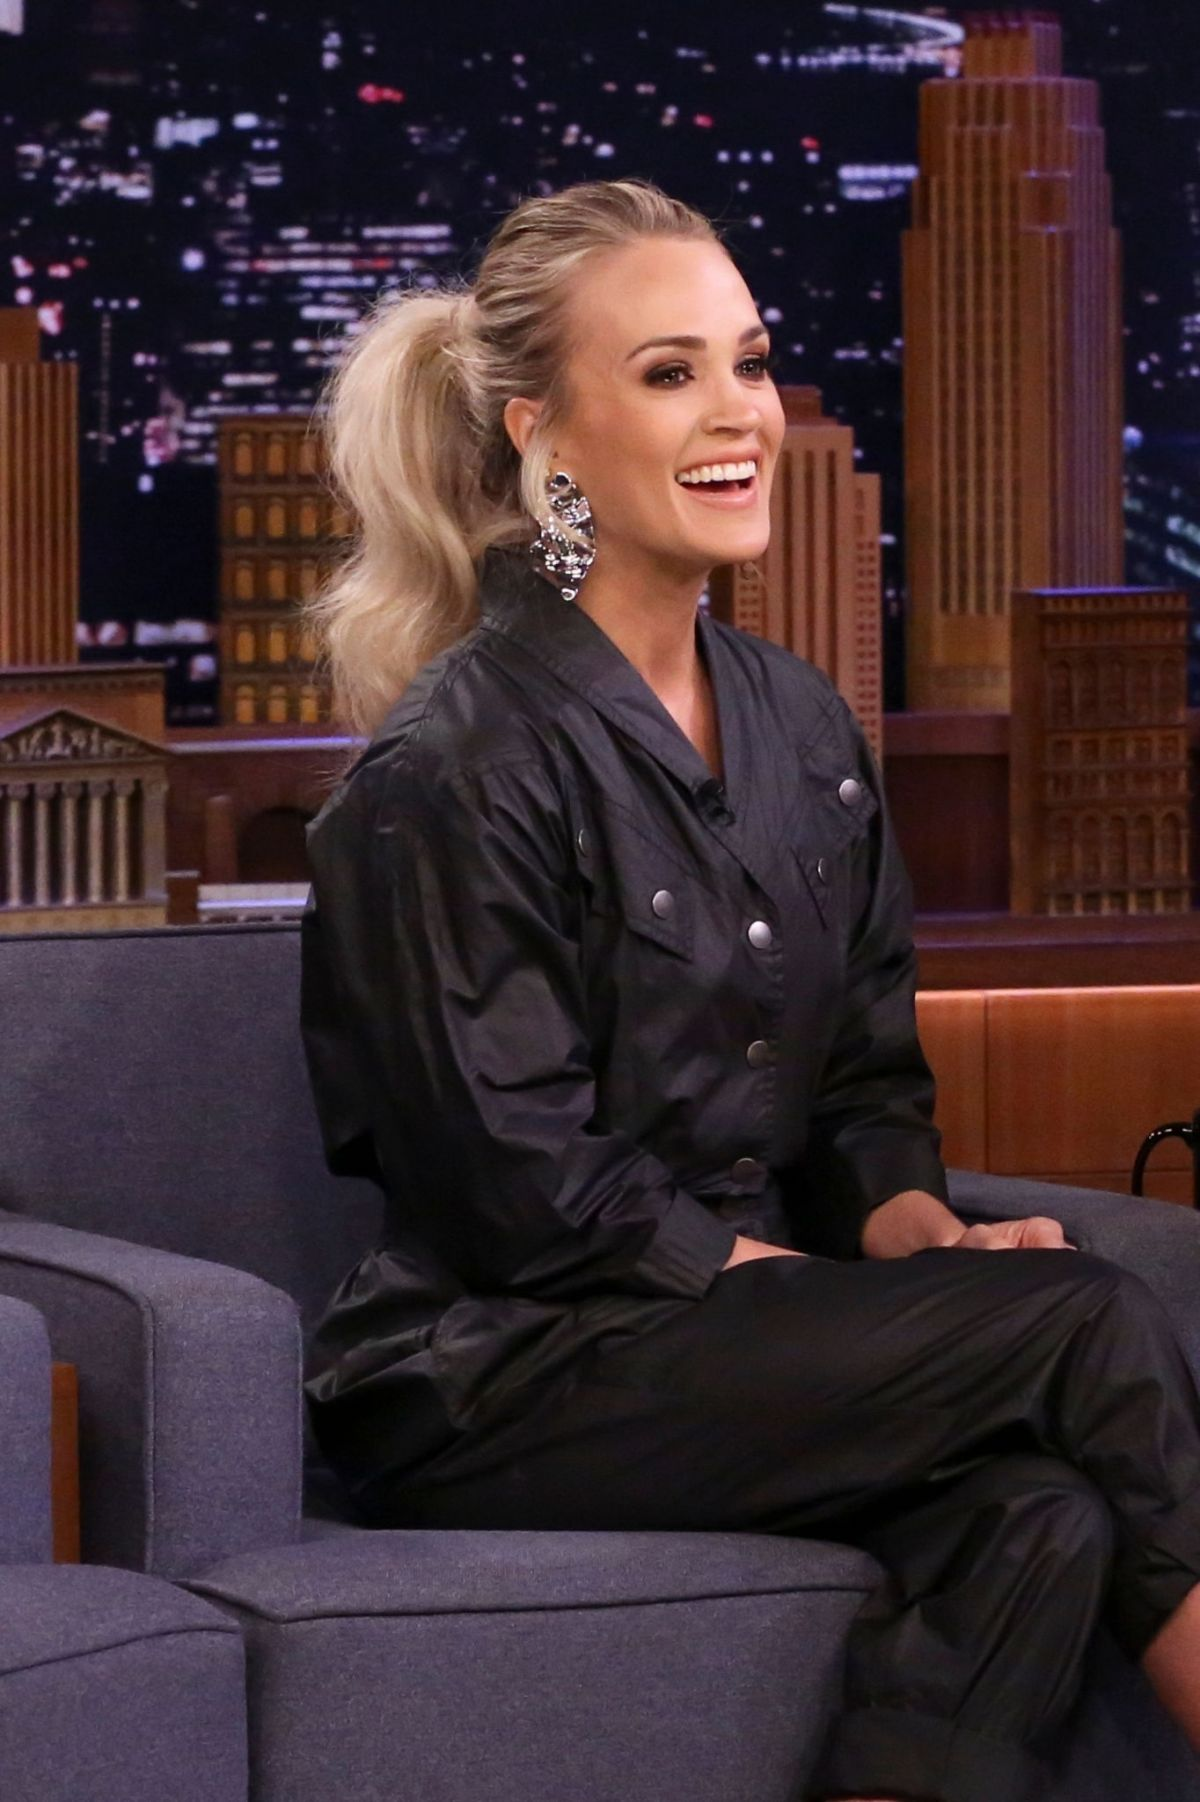 Carrie Underwood At Tonight Show Starring Jimmy Fallon 03 06 2020